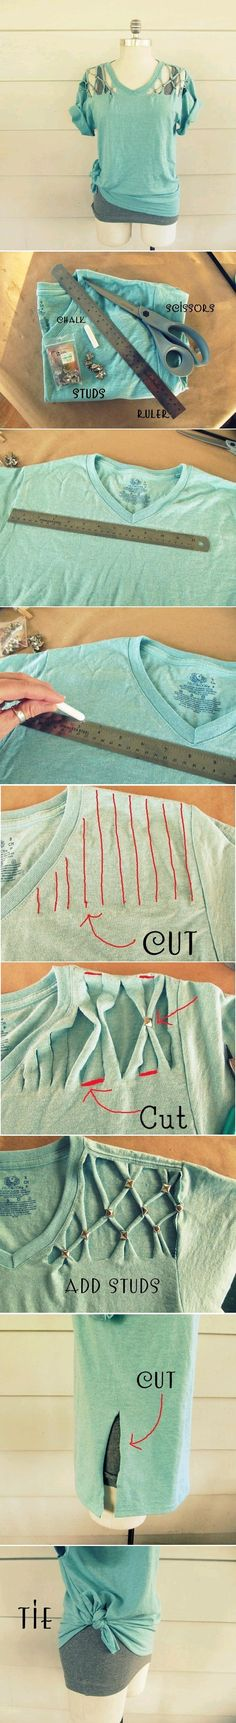 DIY Cool Studded T-Shirt @Michele Morales Morales Jacob Morgan Bridges